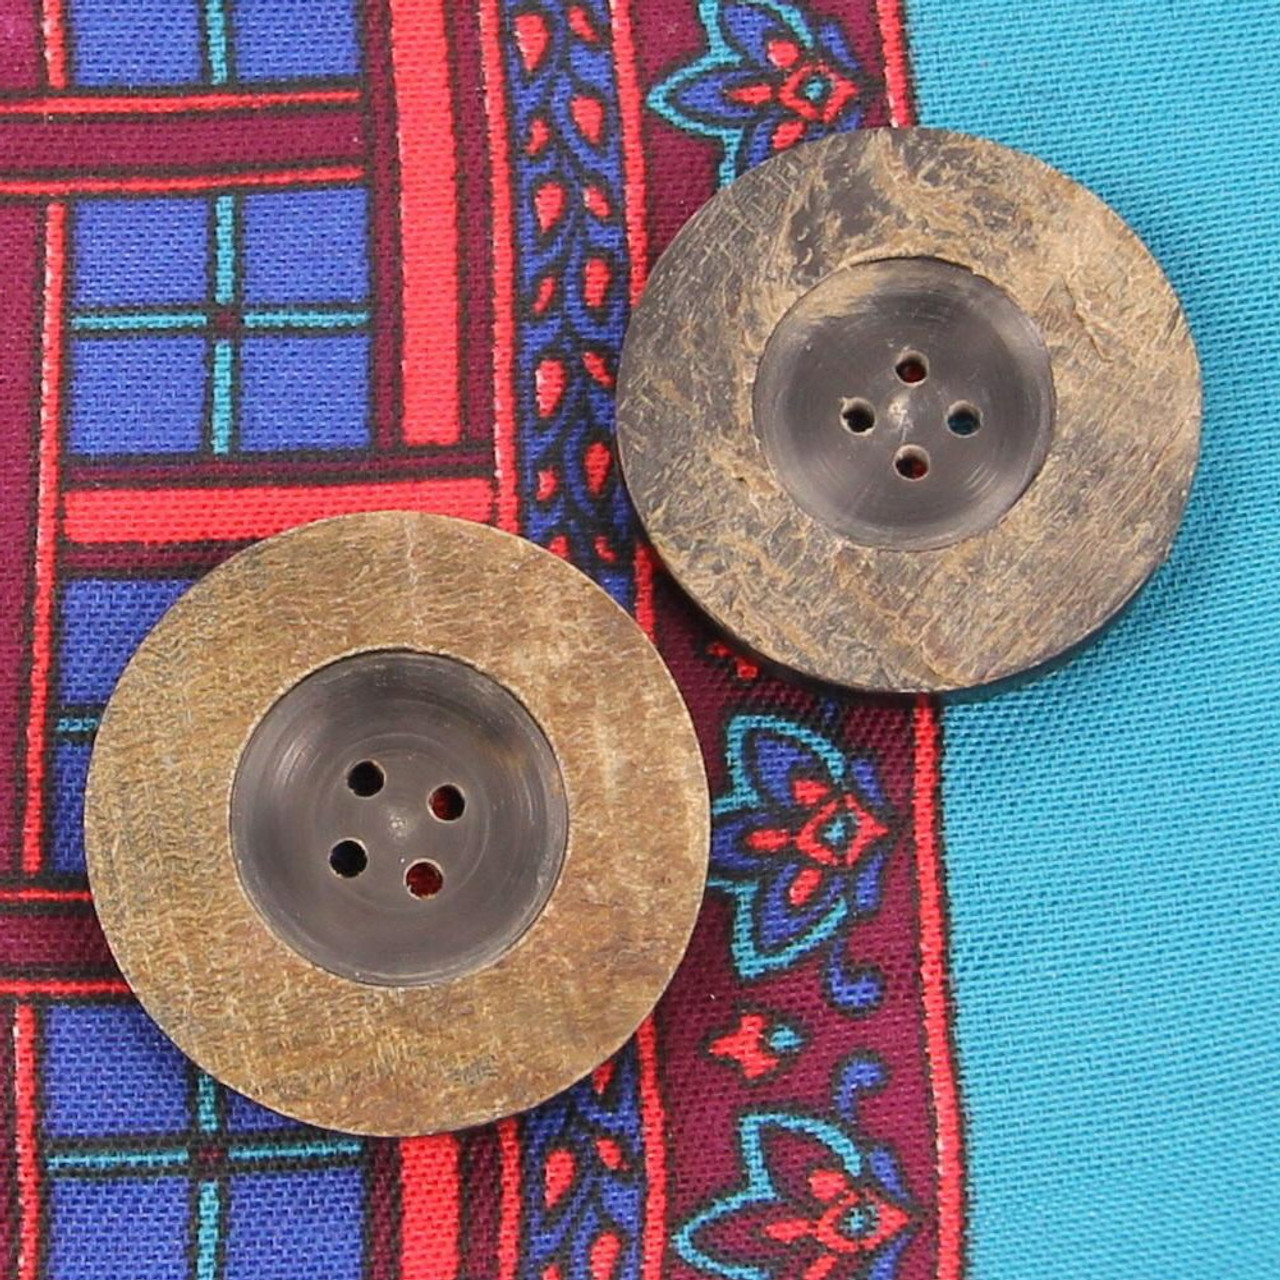 Distressed Handmade Vogue Fashion Buttons